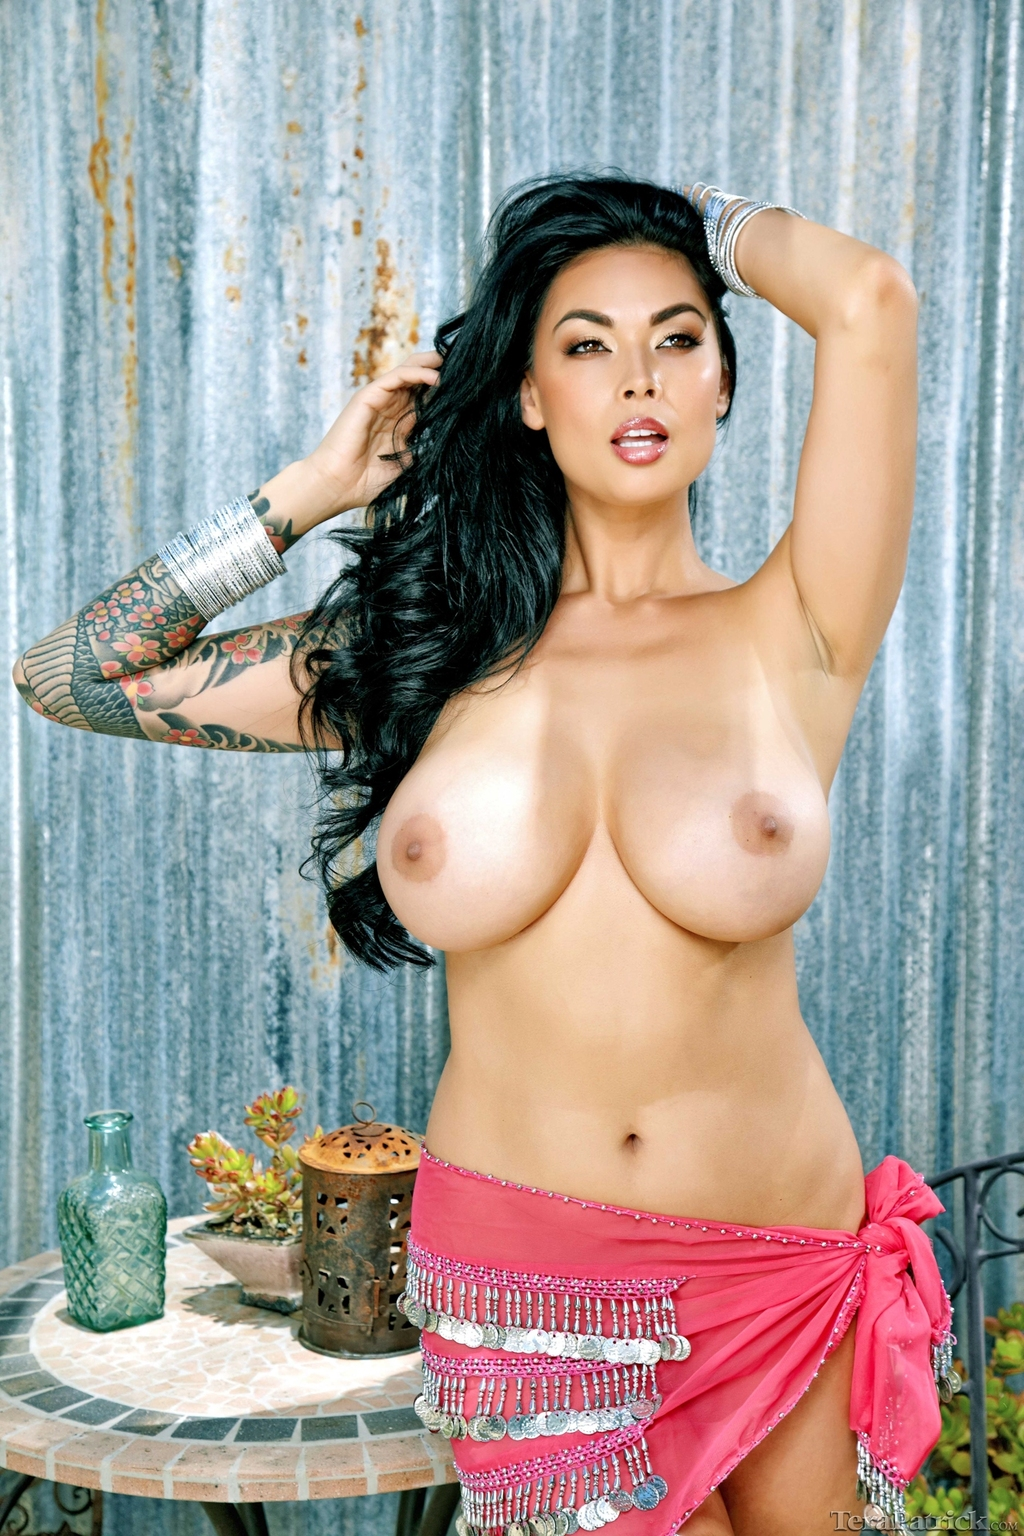 Tera patrick hot nude and naked, sexy blonde teasing so sexy part i